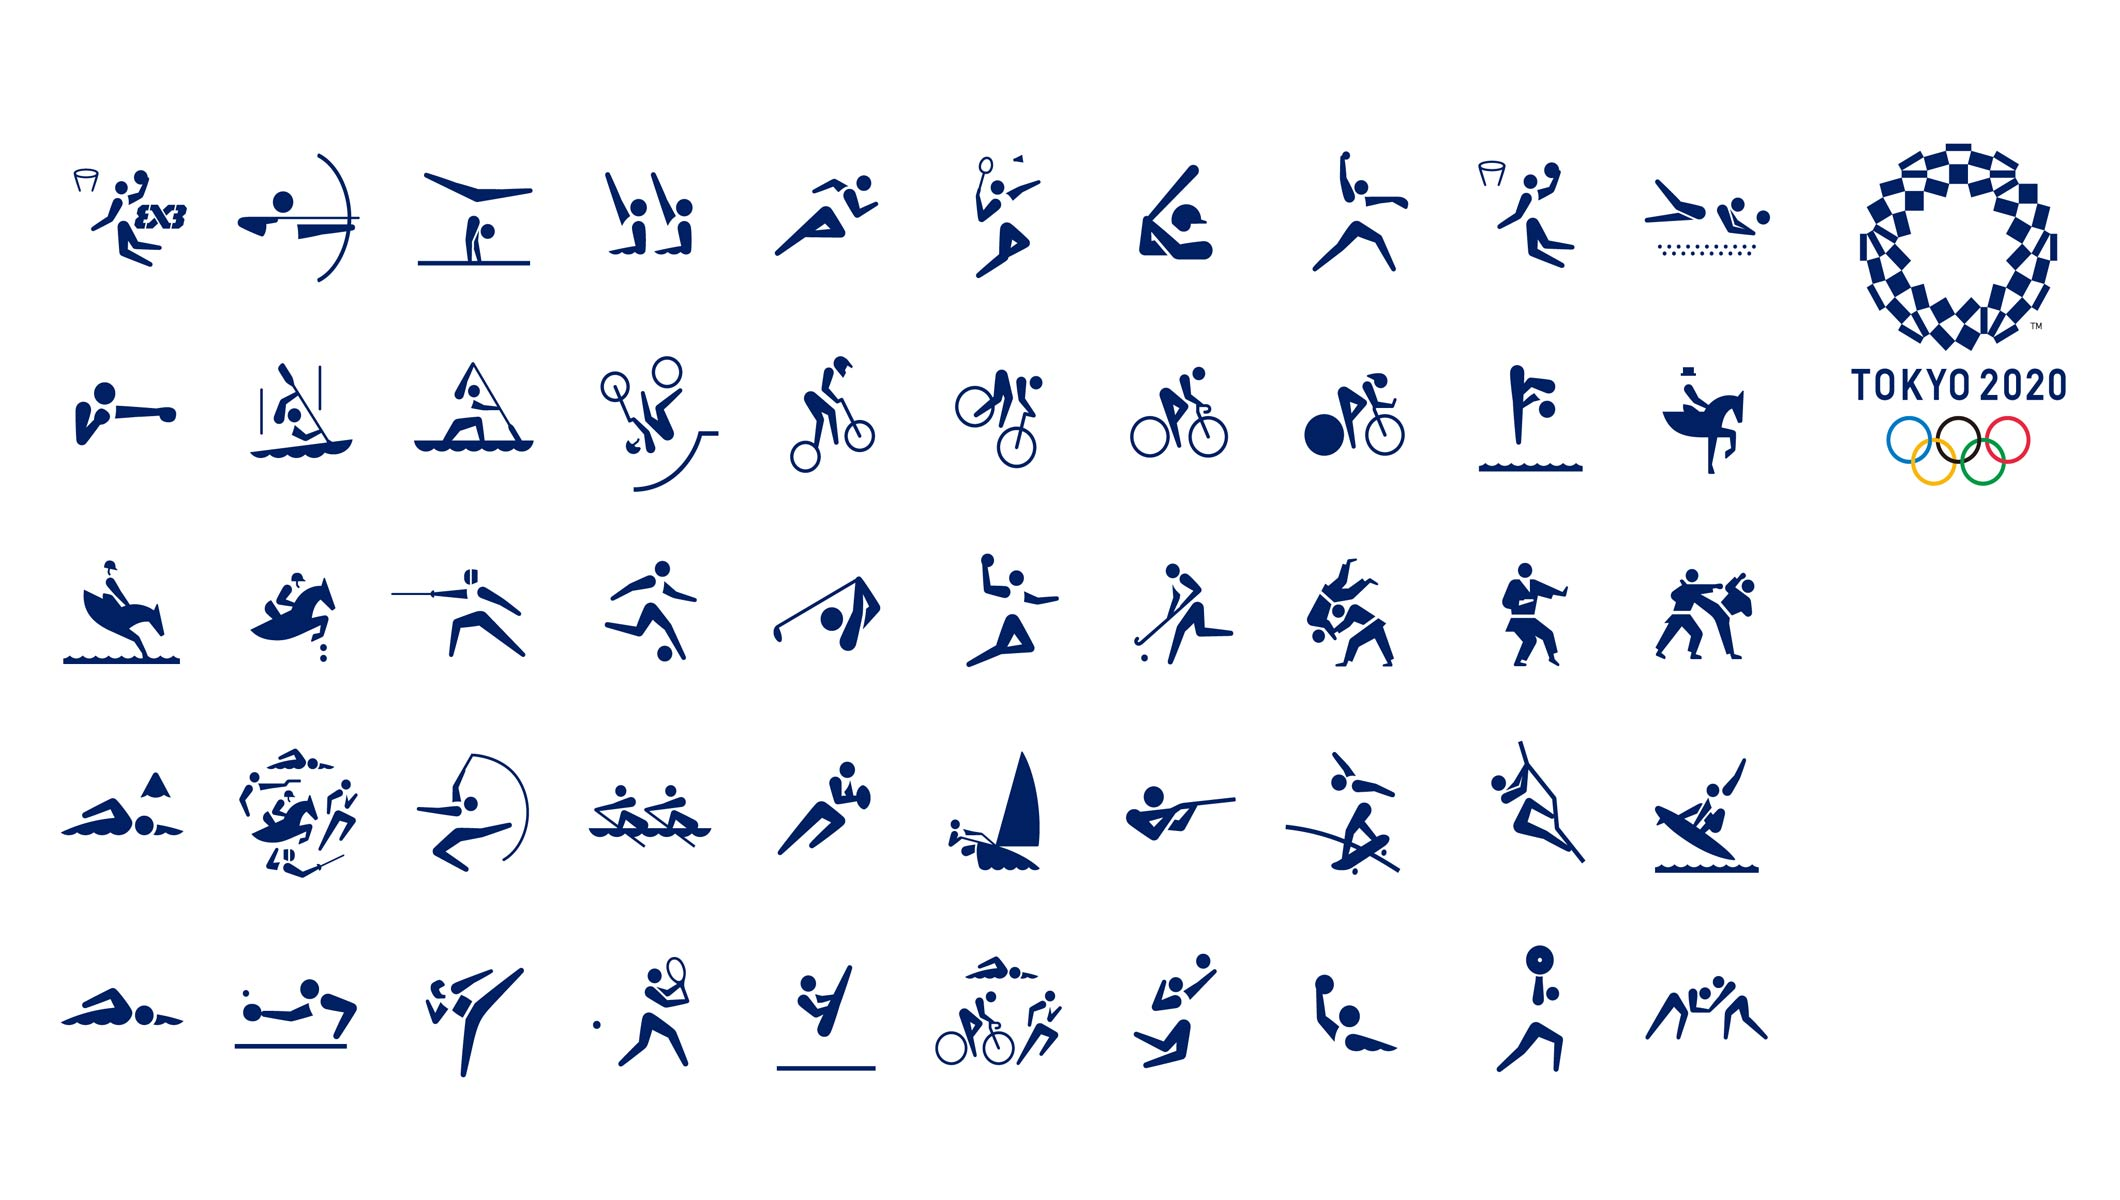 Pyeongchang 2020 Olympic Winter Games Schedule.Tokyo 2020 Unveils Games Pictograms Olympic News